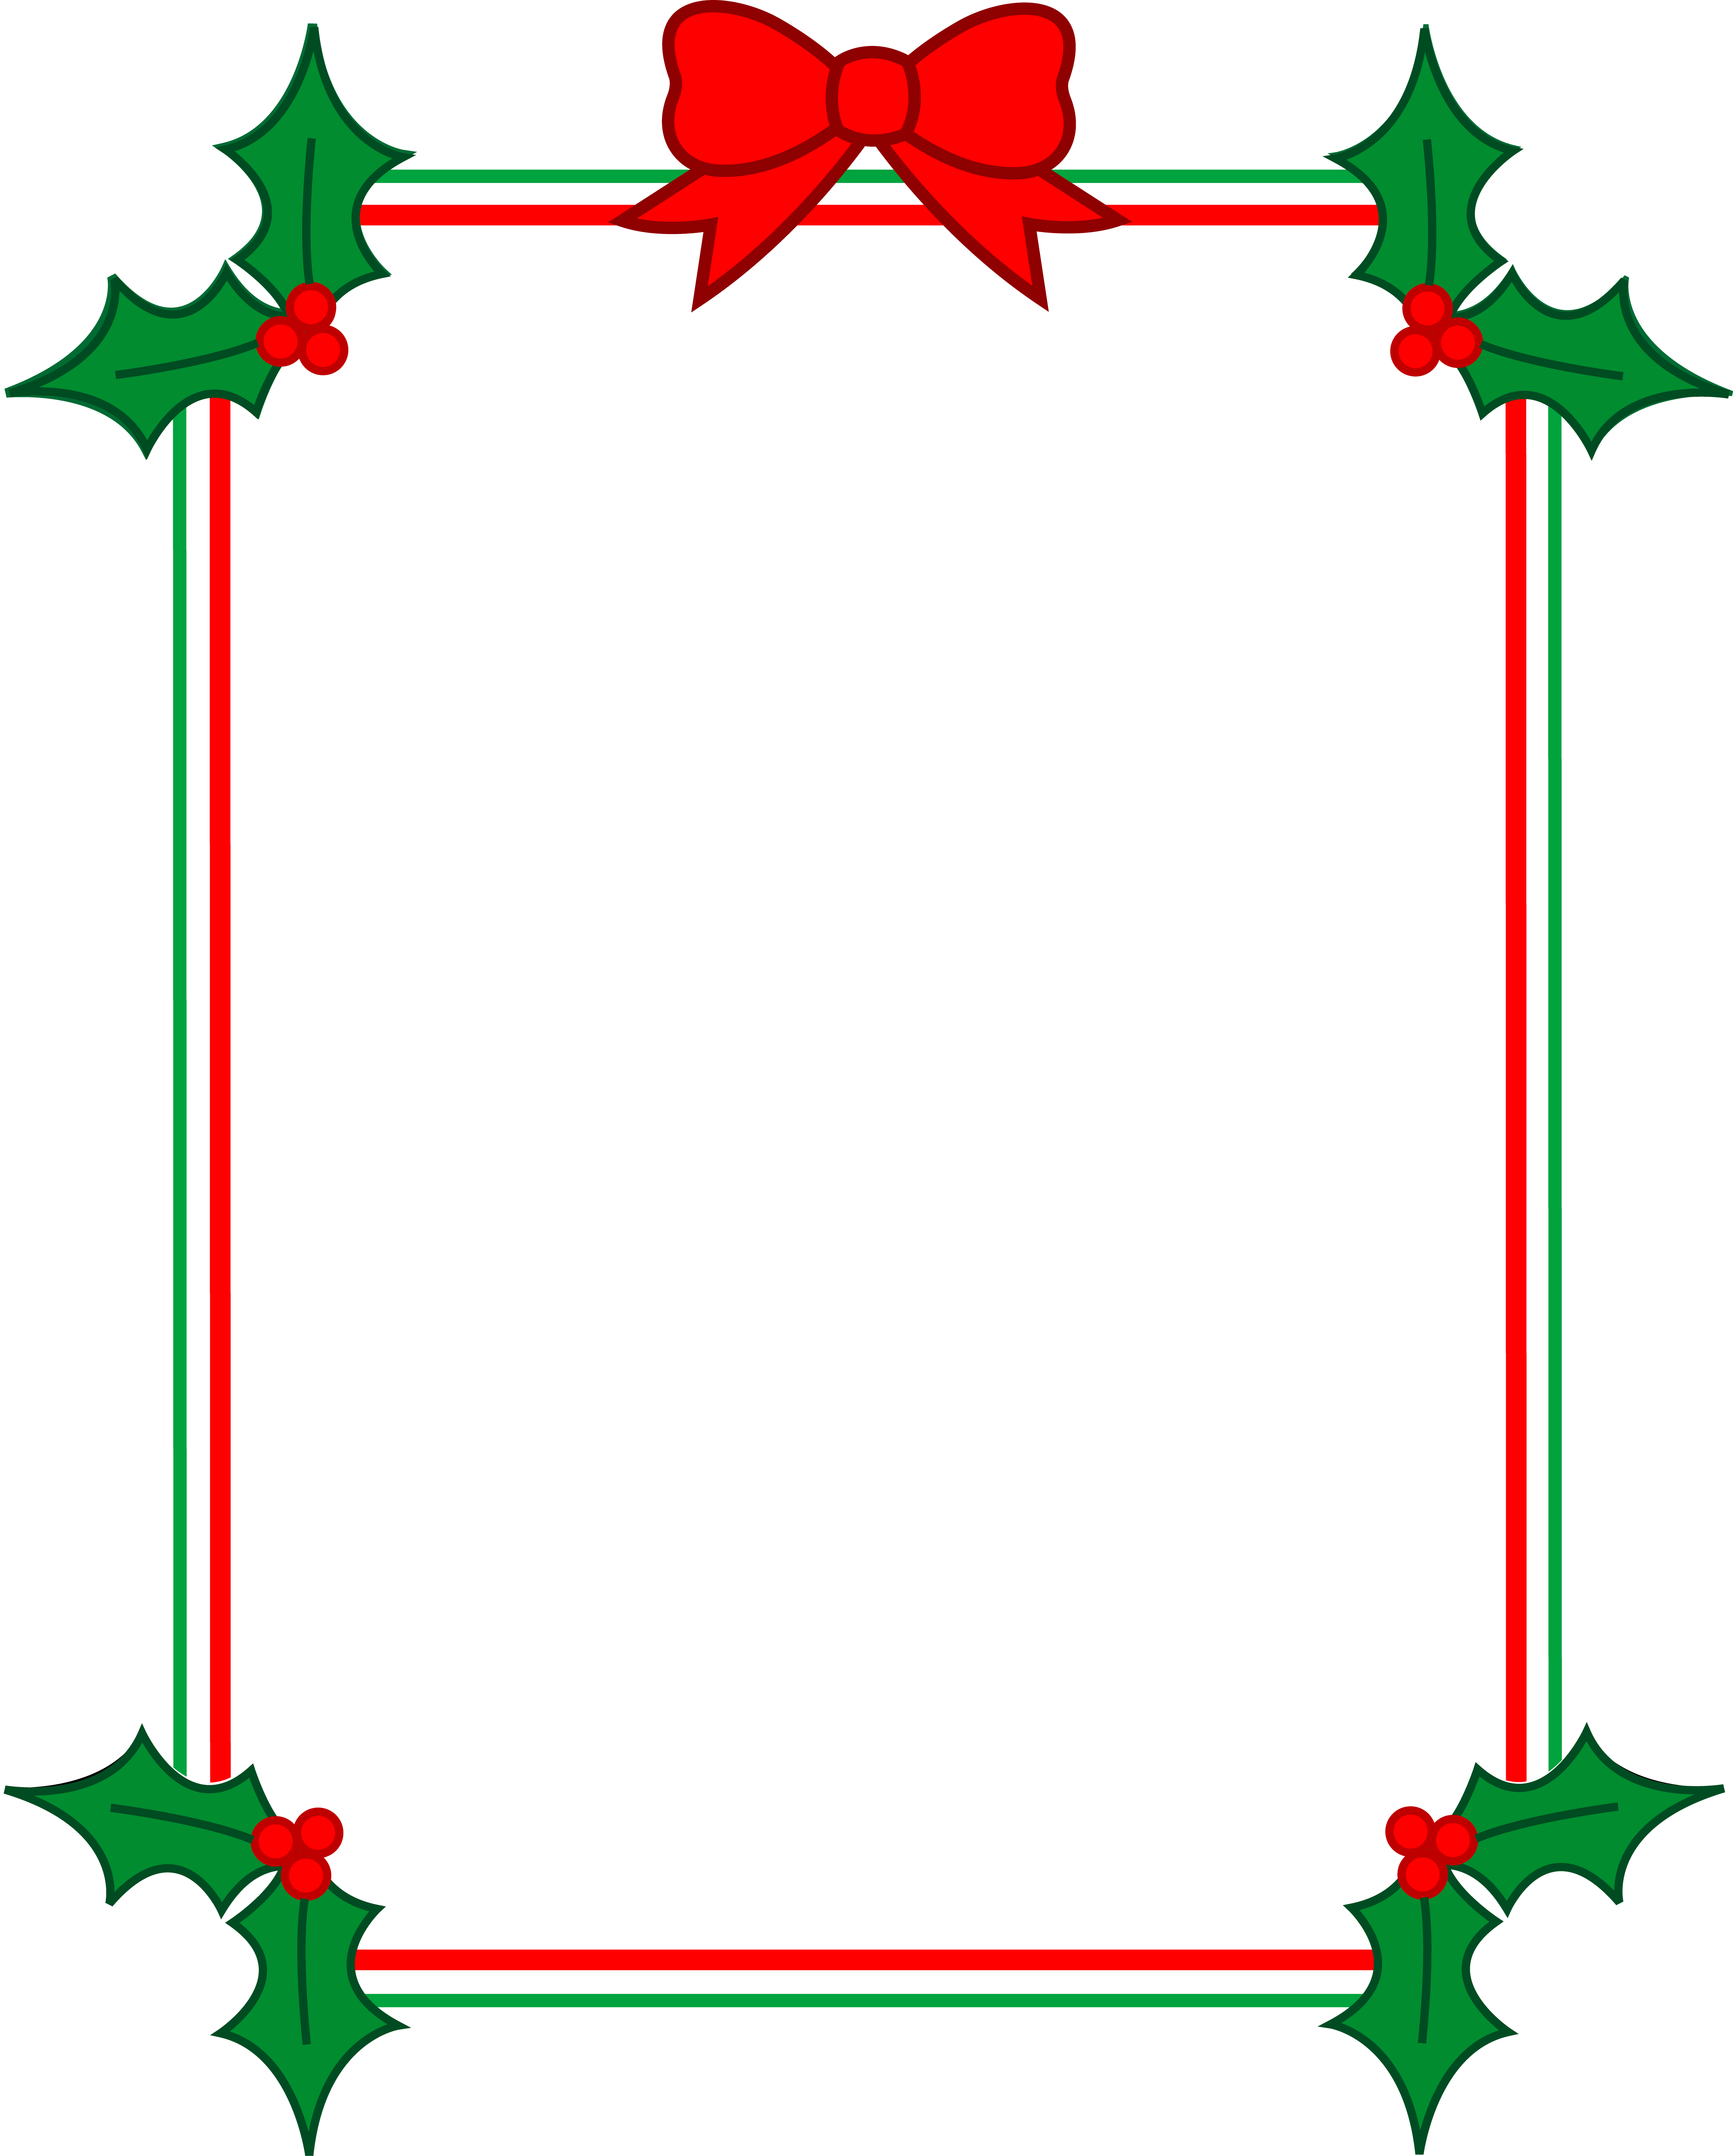 Free Christmas Clip Art Holly | Clipart -Free Christmas Clip Art Holly | Clipart library - Free Clipart Images-6